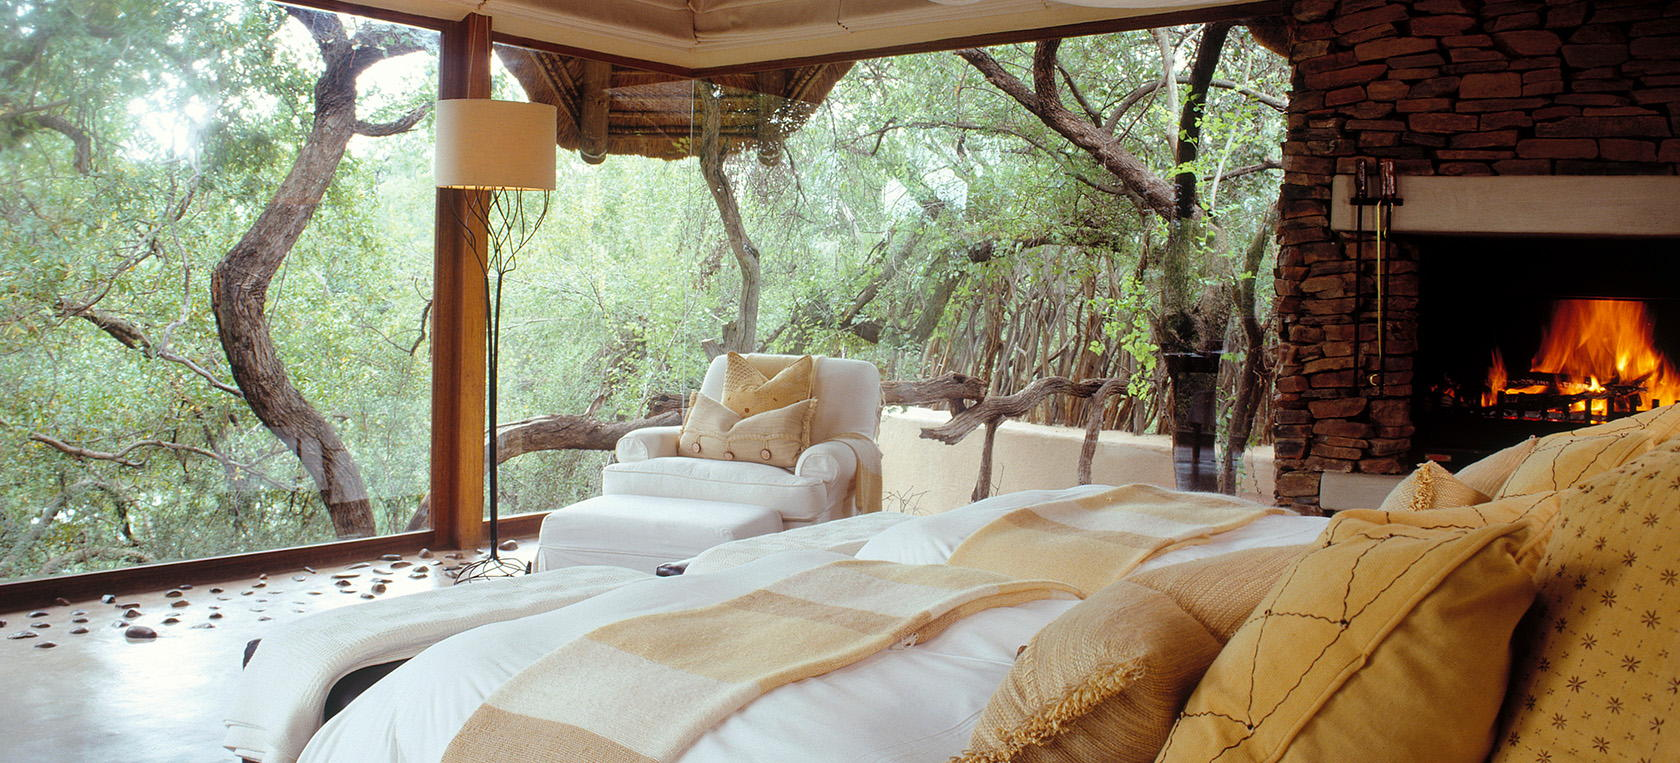 Accommodations South Africa Accommodation At Makanyane Lodge South Africa Sanctuary Retreats